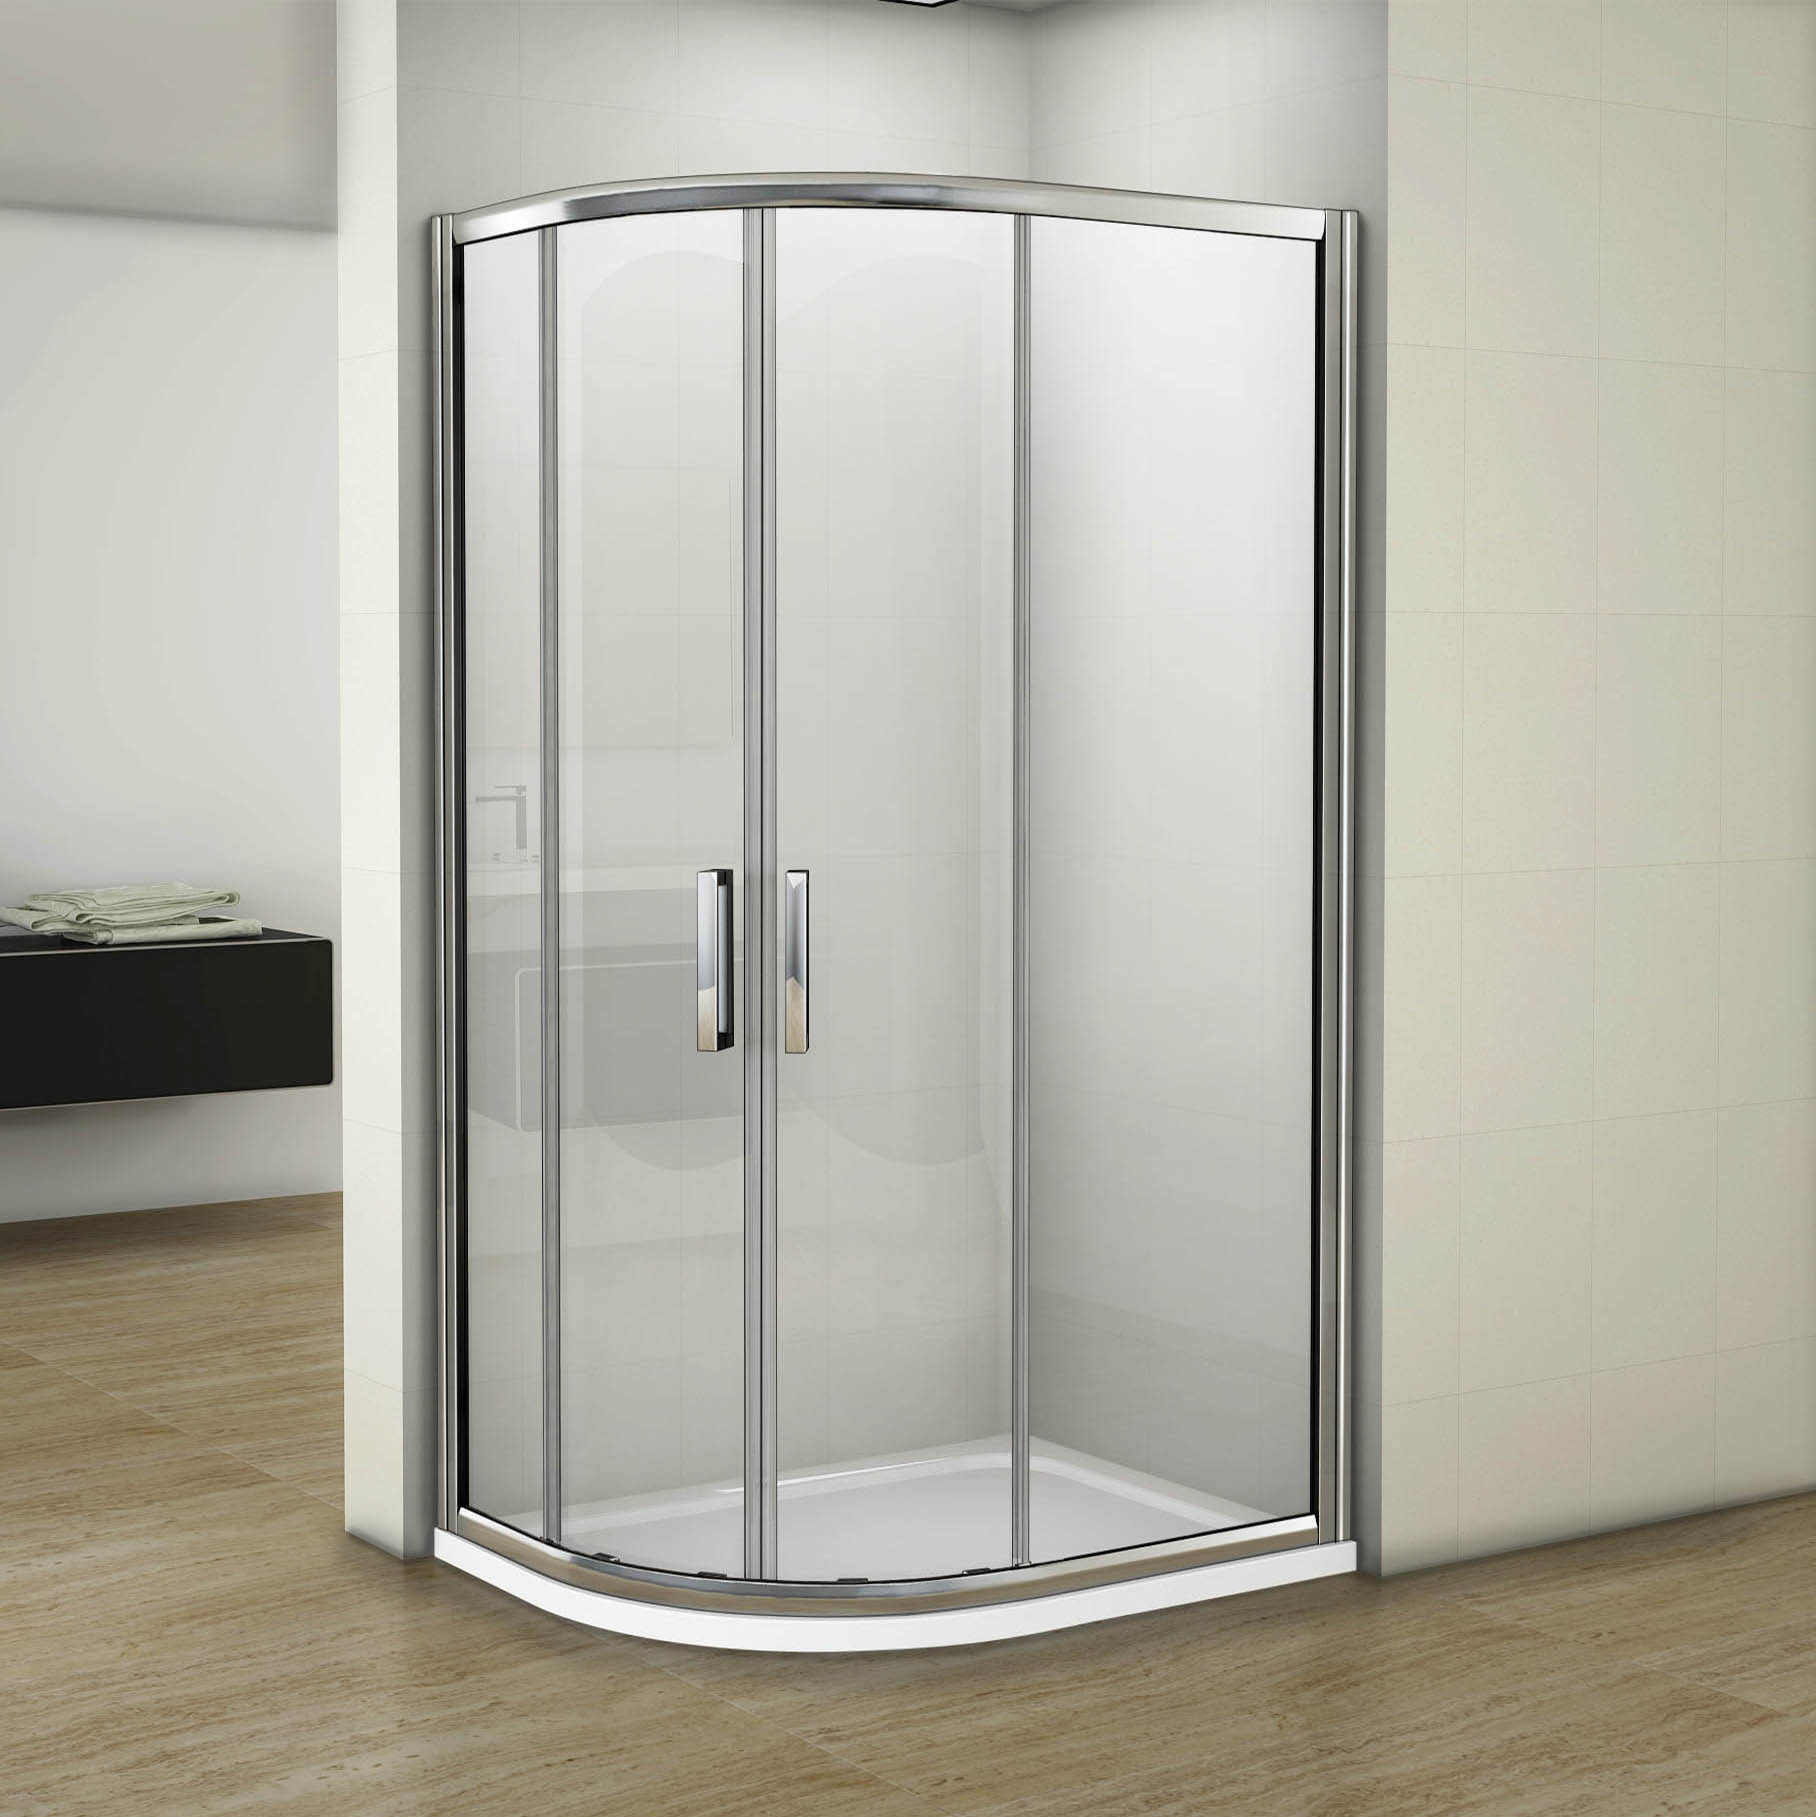 Luxury Quadrant Shower Enclosure Easy Clean 8mm Glass